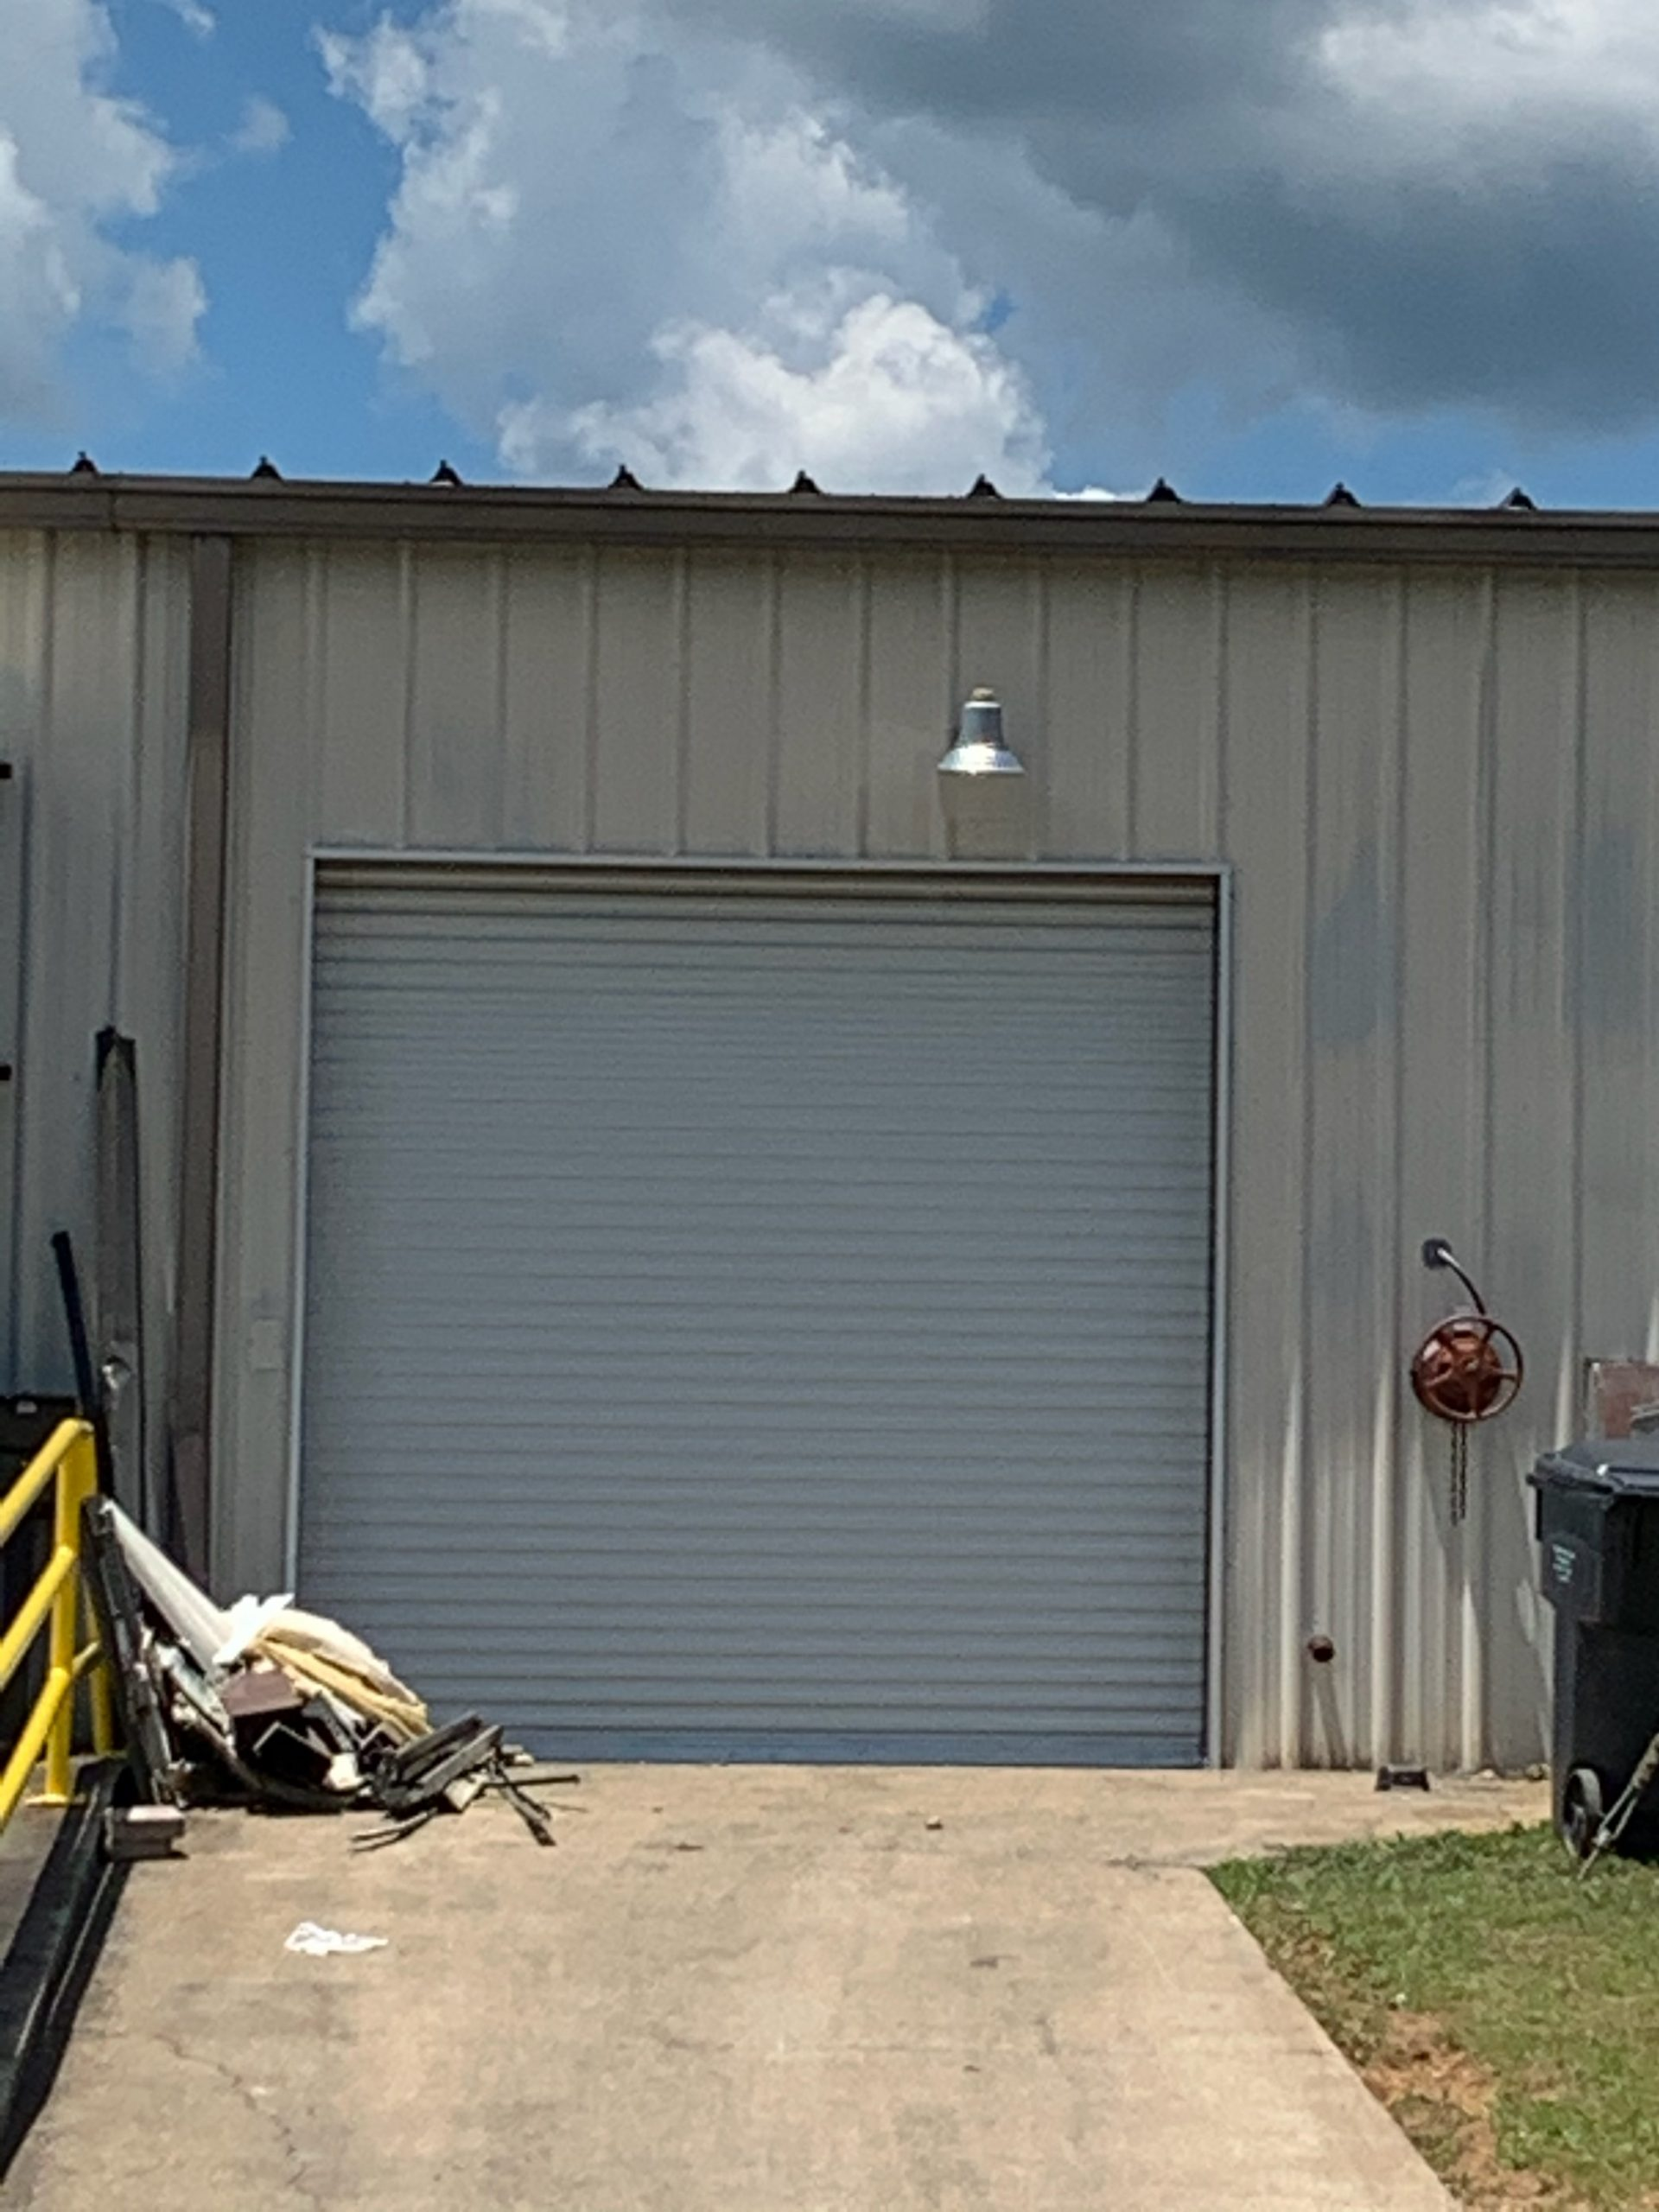 to show a picture of a commercial rolling steel door